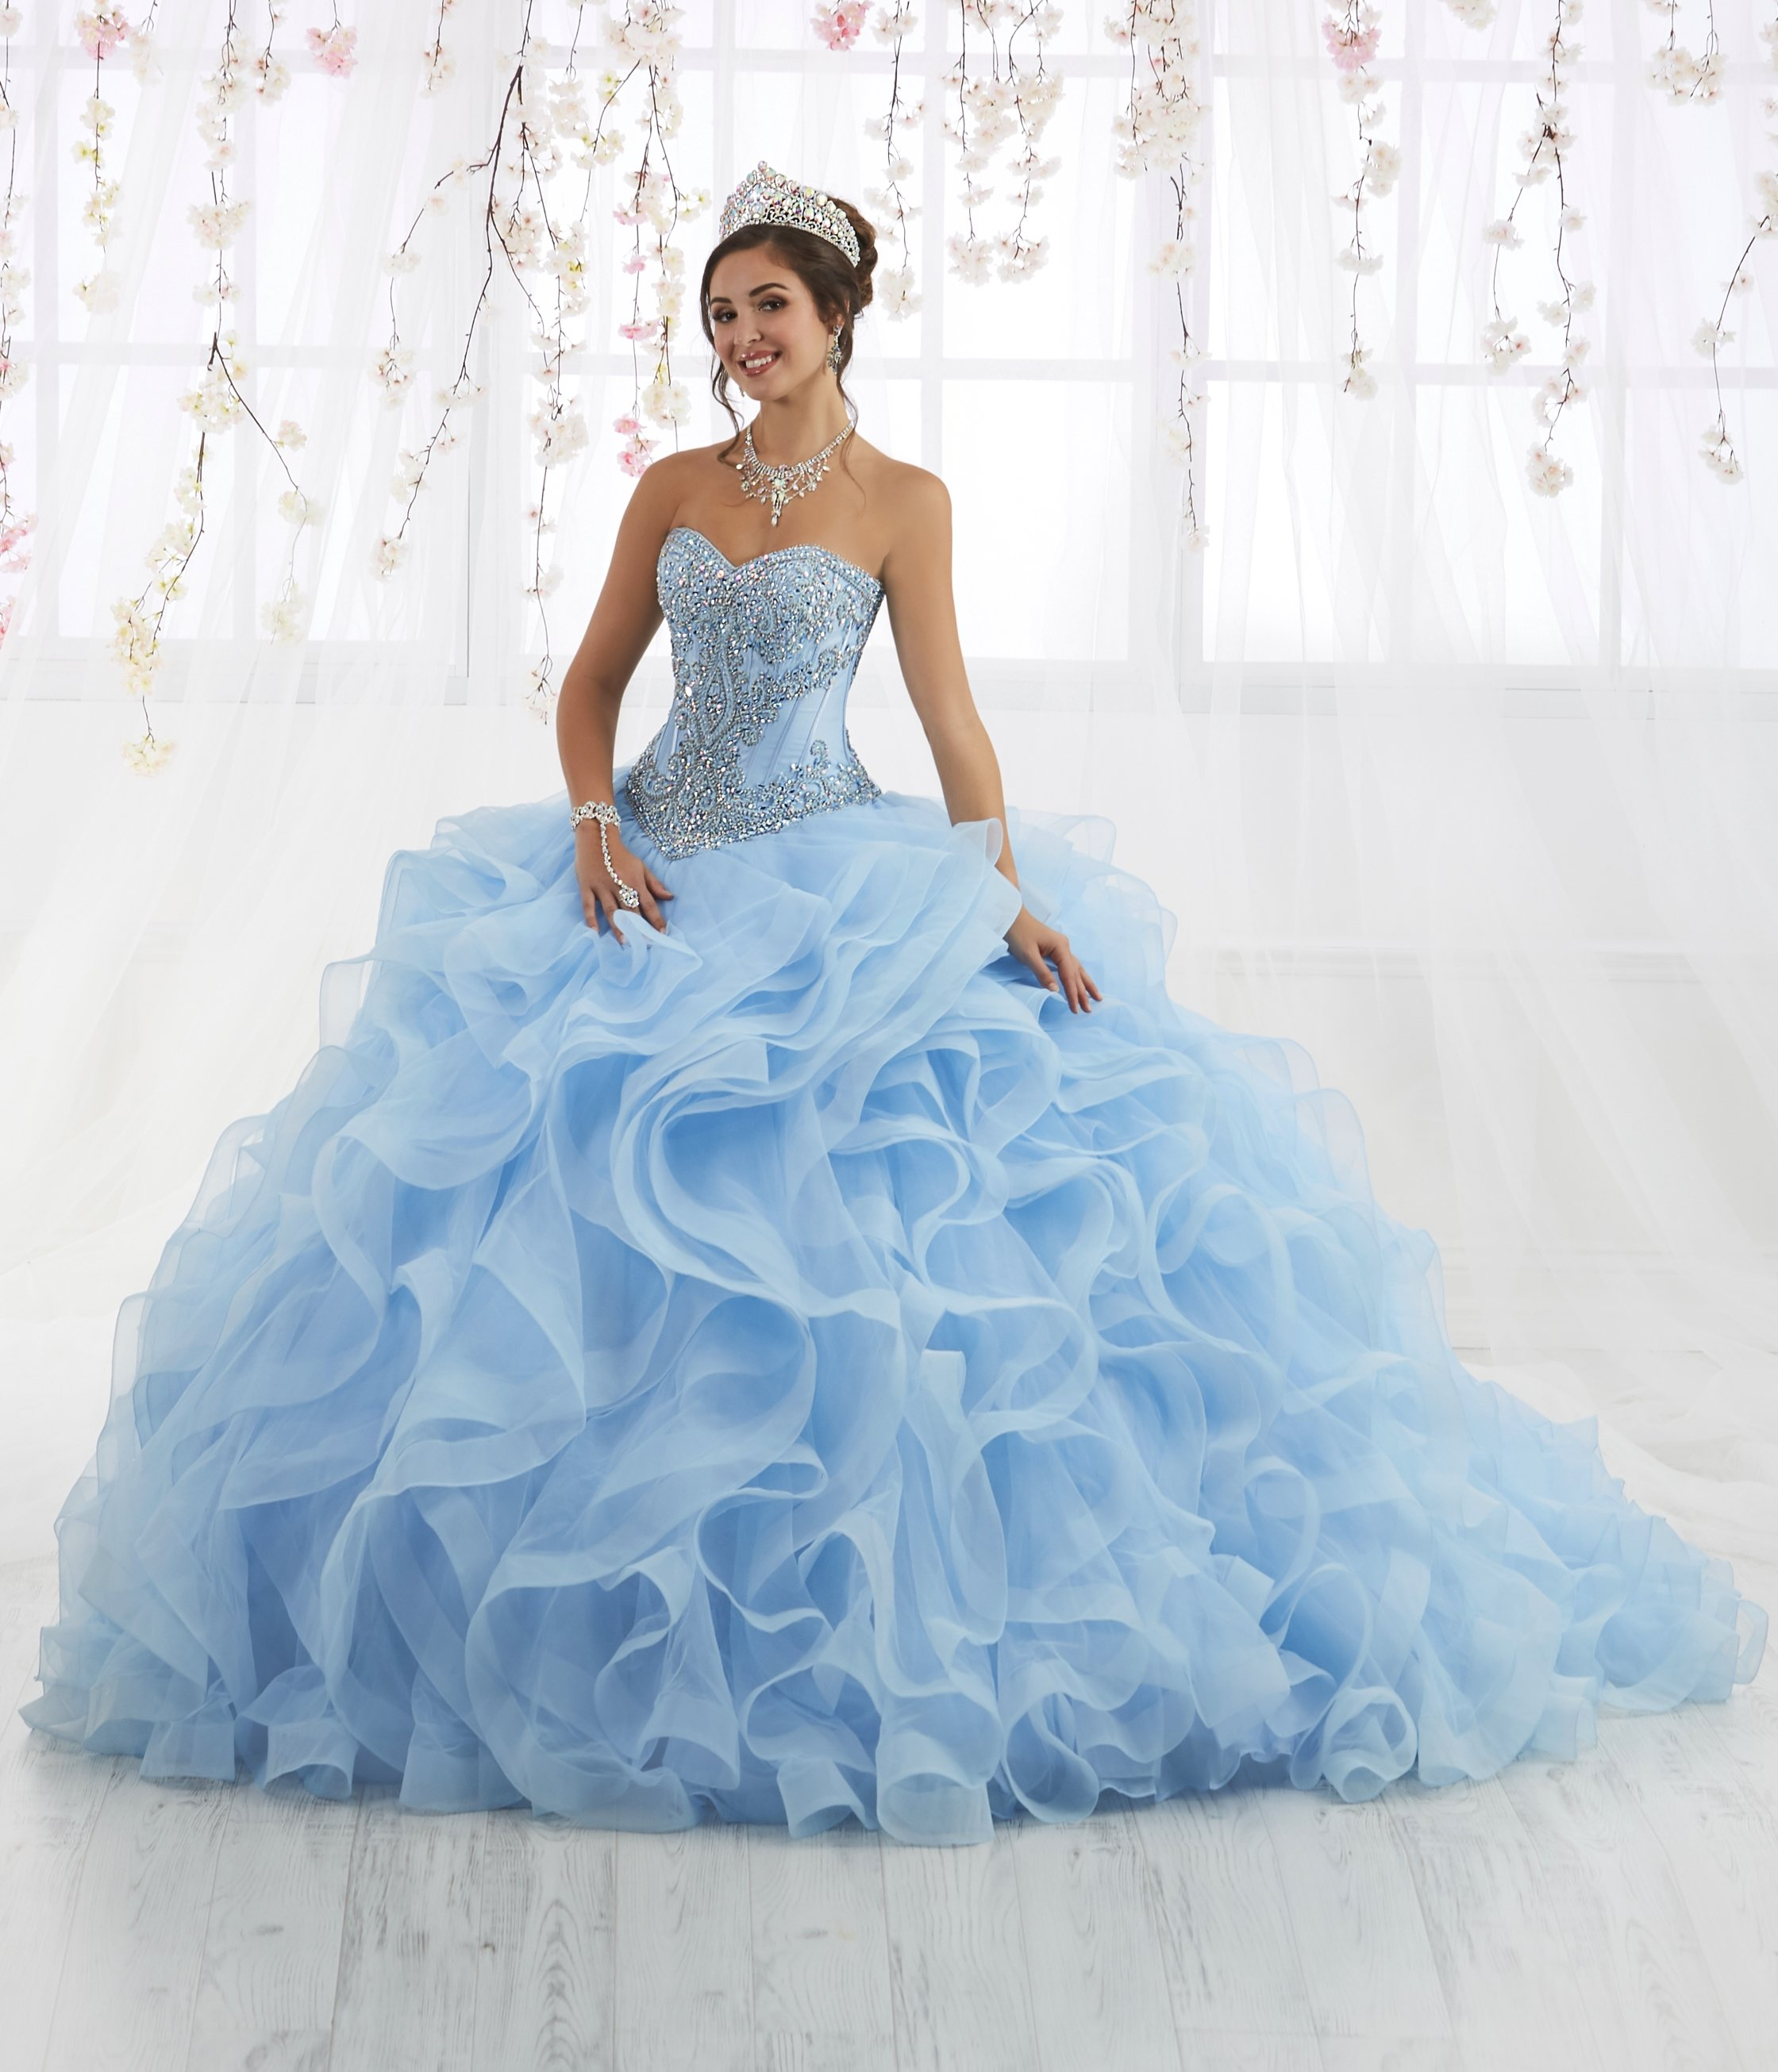 b7eb5f4ad96 Ruffled Strapless Tulle Quinceanera Dress by House of Wu 26916 in ...